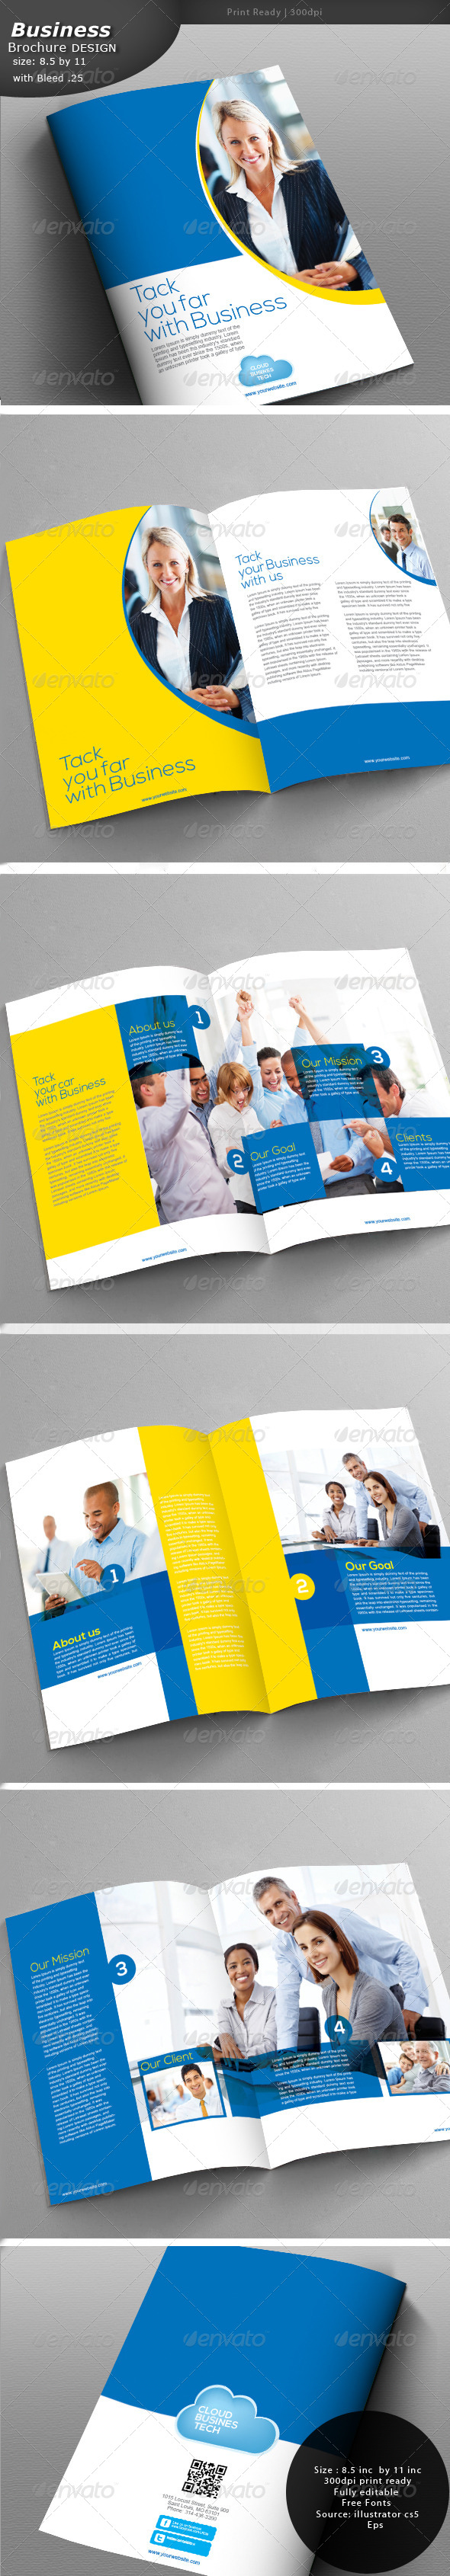 GraphicRiver Business Brochure Design 5554420